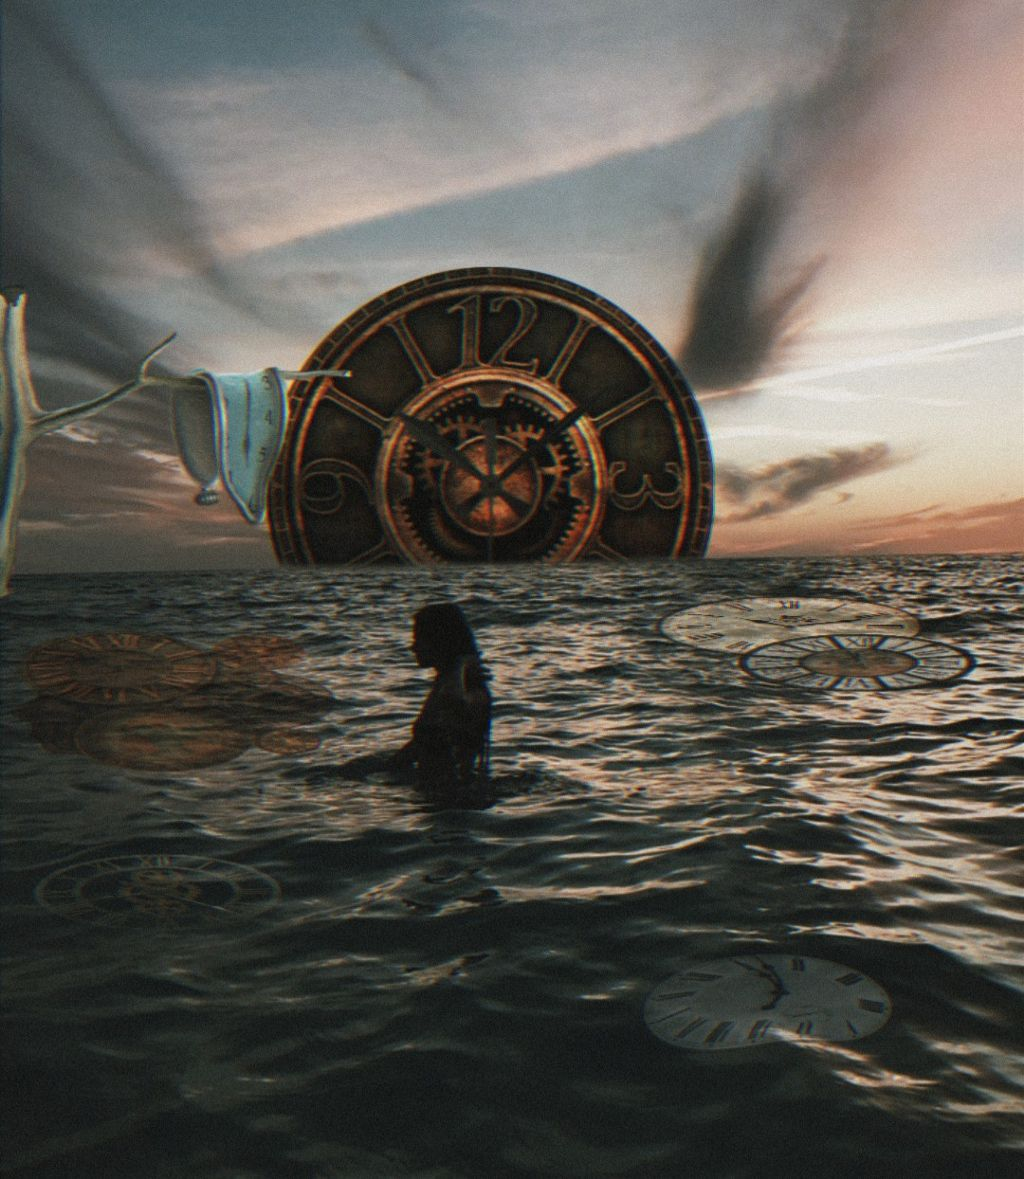 #freetoedit #watch #surreal #clock #myedit #tumblr #girl #woman #cool #weird #like #love #art #photography #photograph #amazing #awesome #makeawesome #picsart #aesthetic #grunge